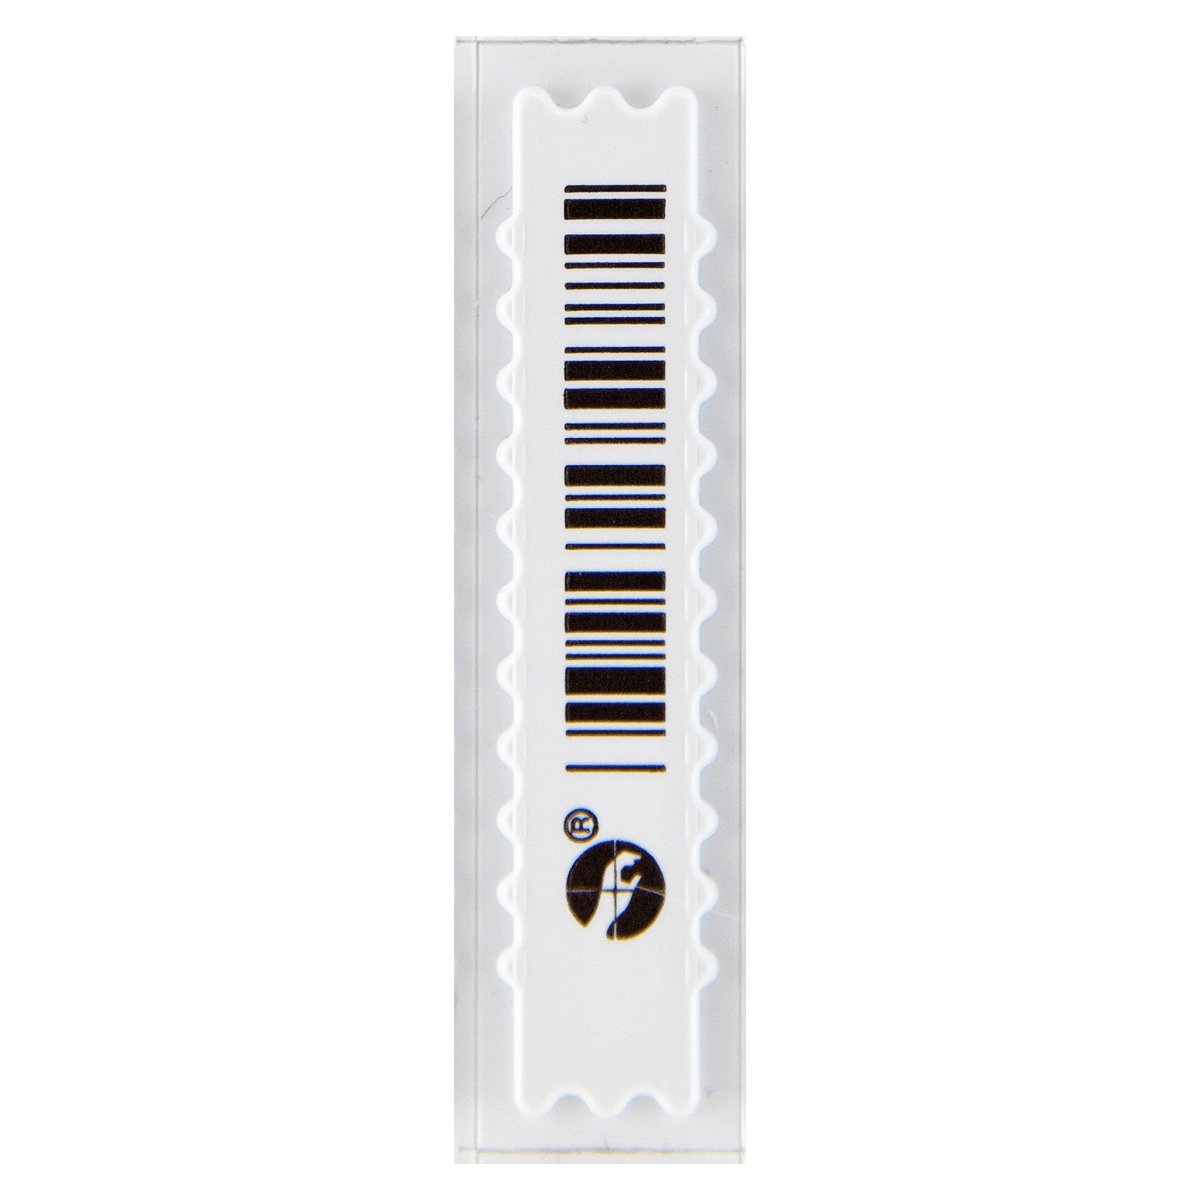 Sensormatic APX  Fake Barcode Label Pack of 5000 Tyco Integrated Security AMDRBC-APX